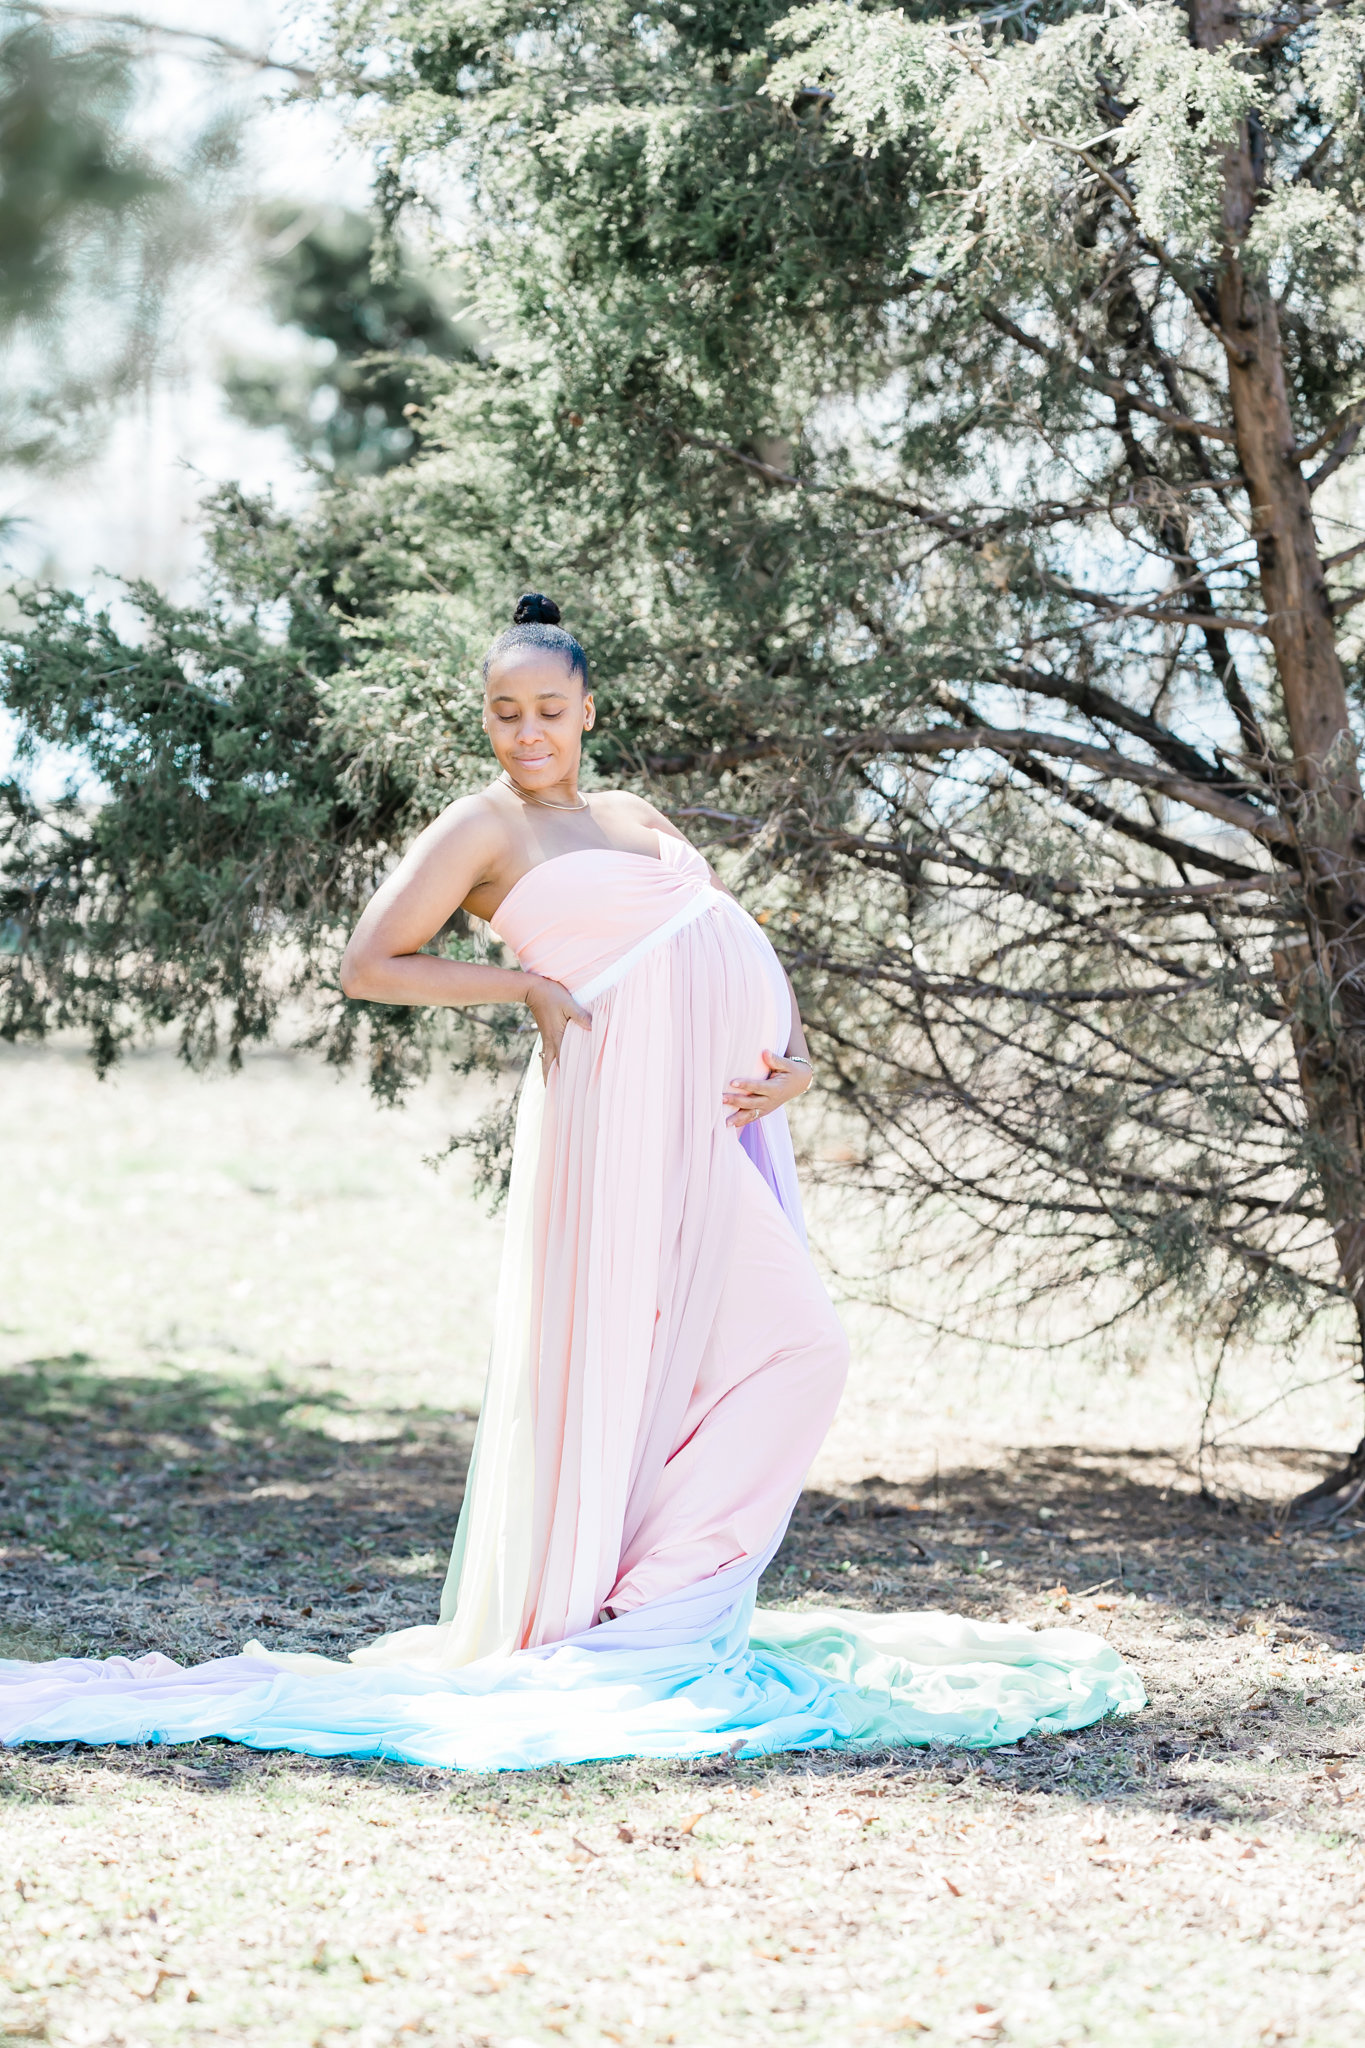 Dreamcatcher Rose Studios - maternity - brooklyn ny - pregnant at the park